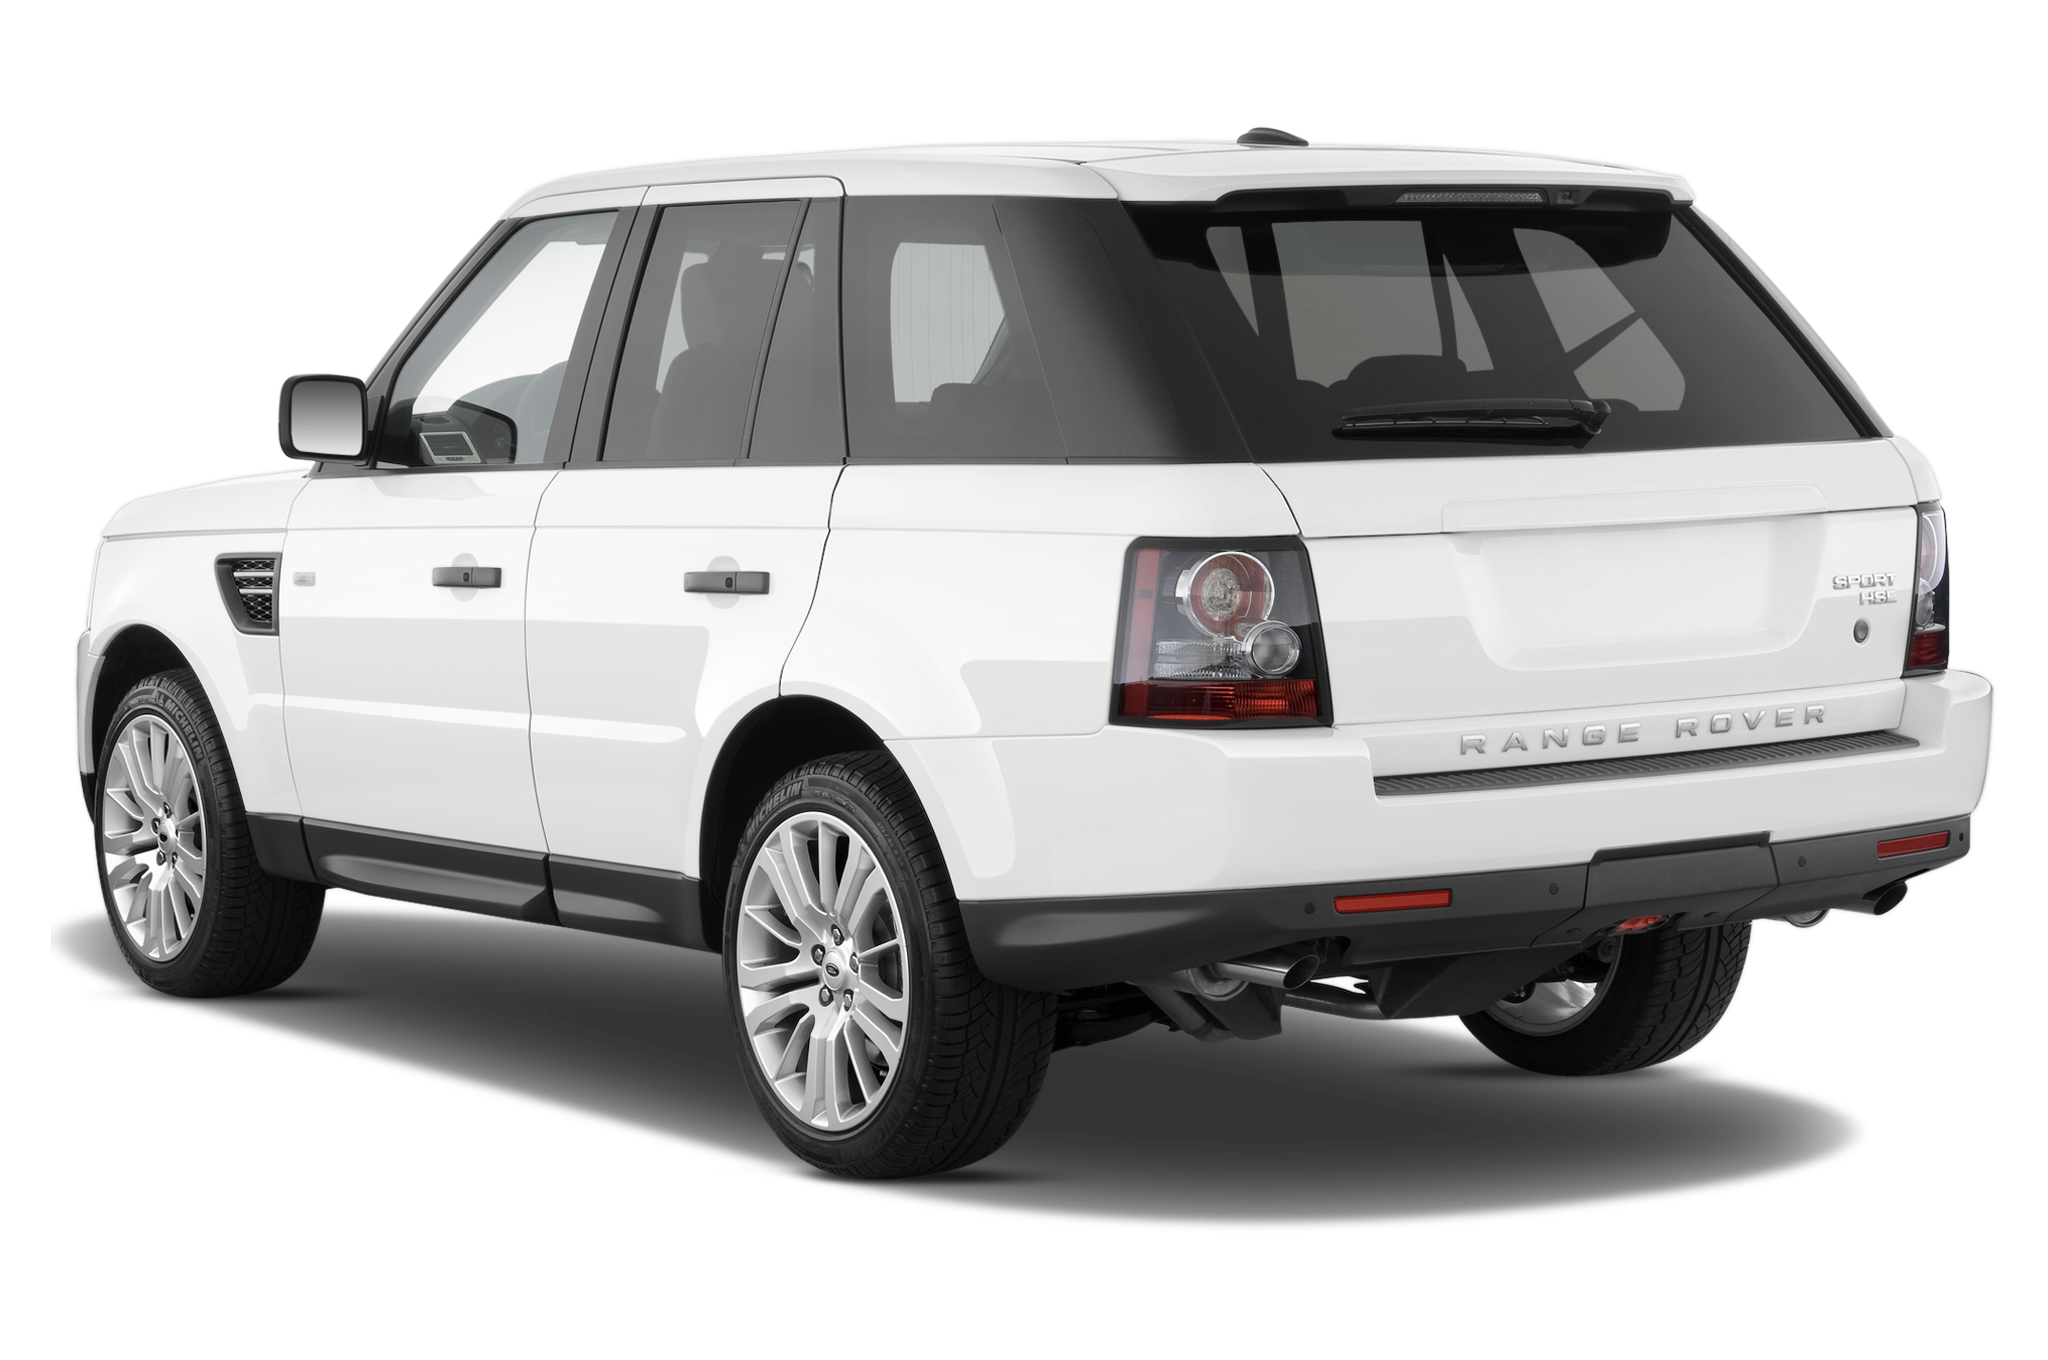 2010 Land Rover Range Rover Sport Supercharged Land